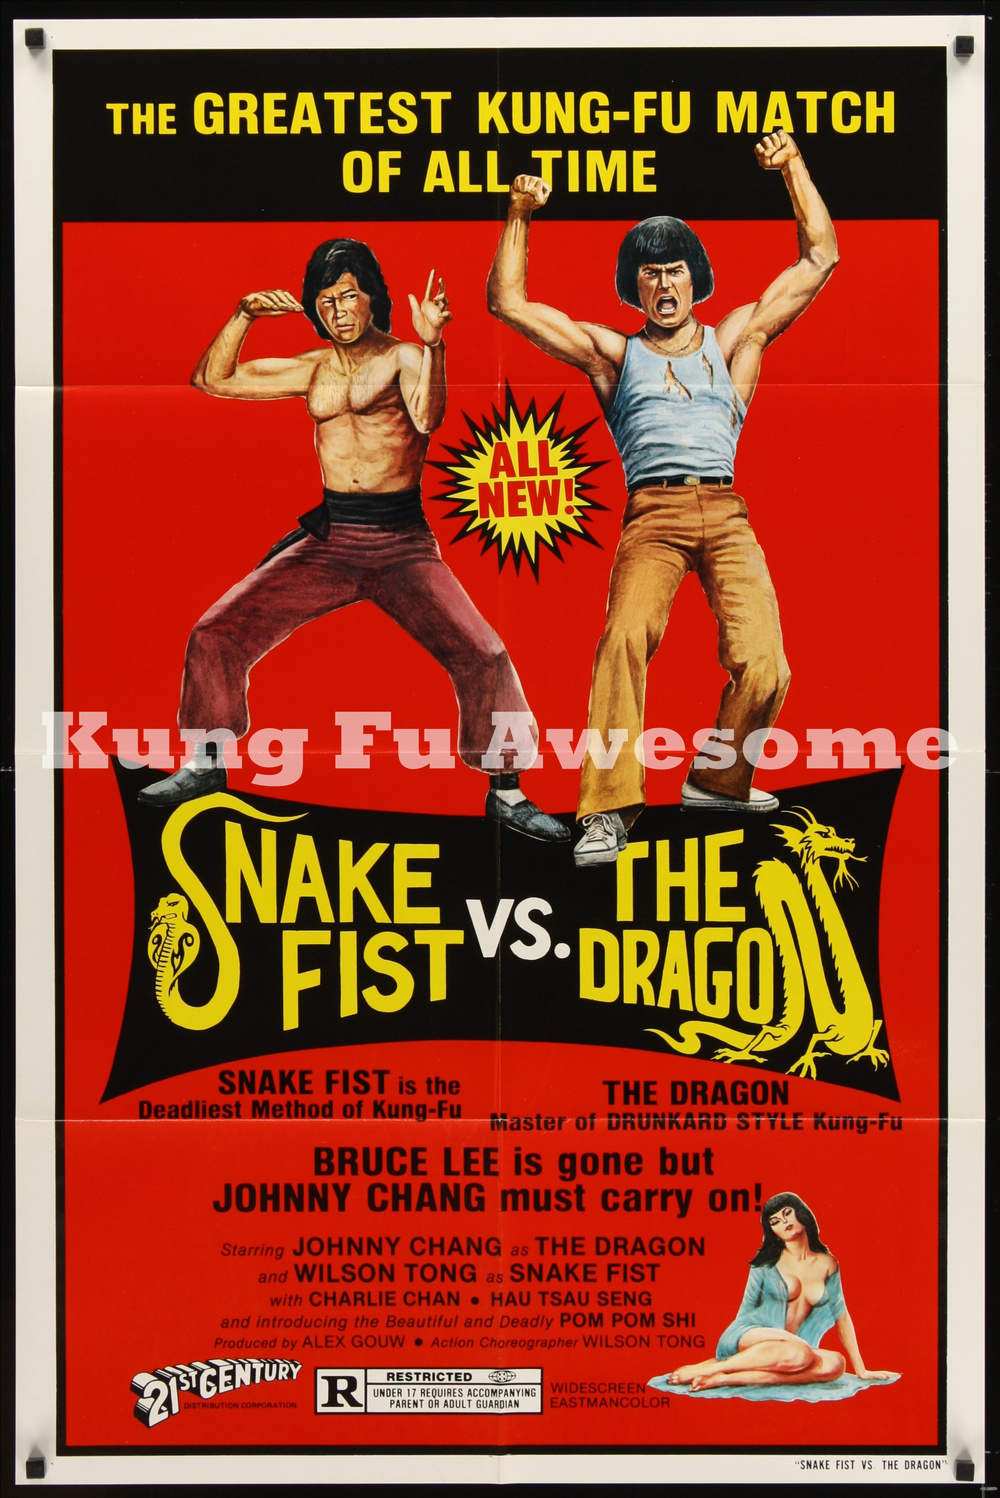 snake_fist_vs_the_dragon_HP01054_L.jpg